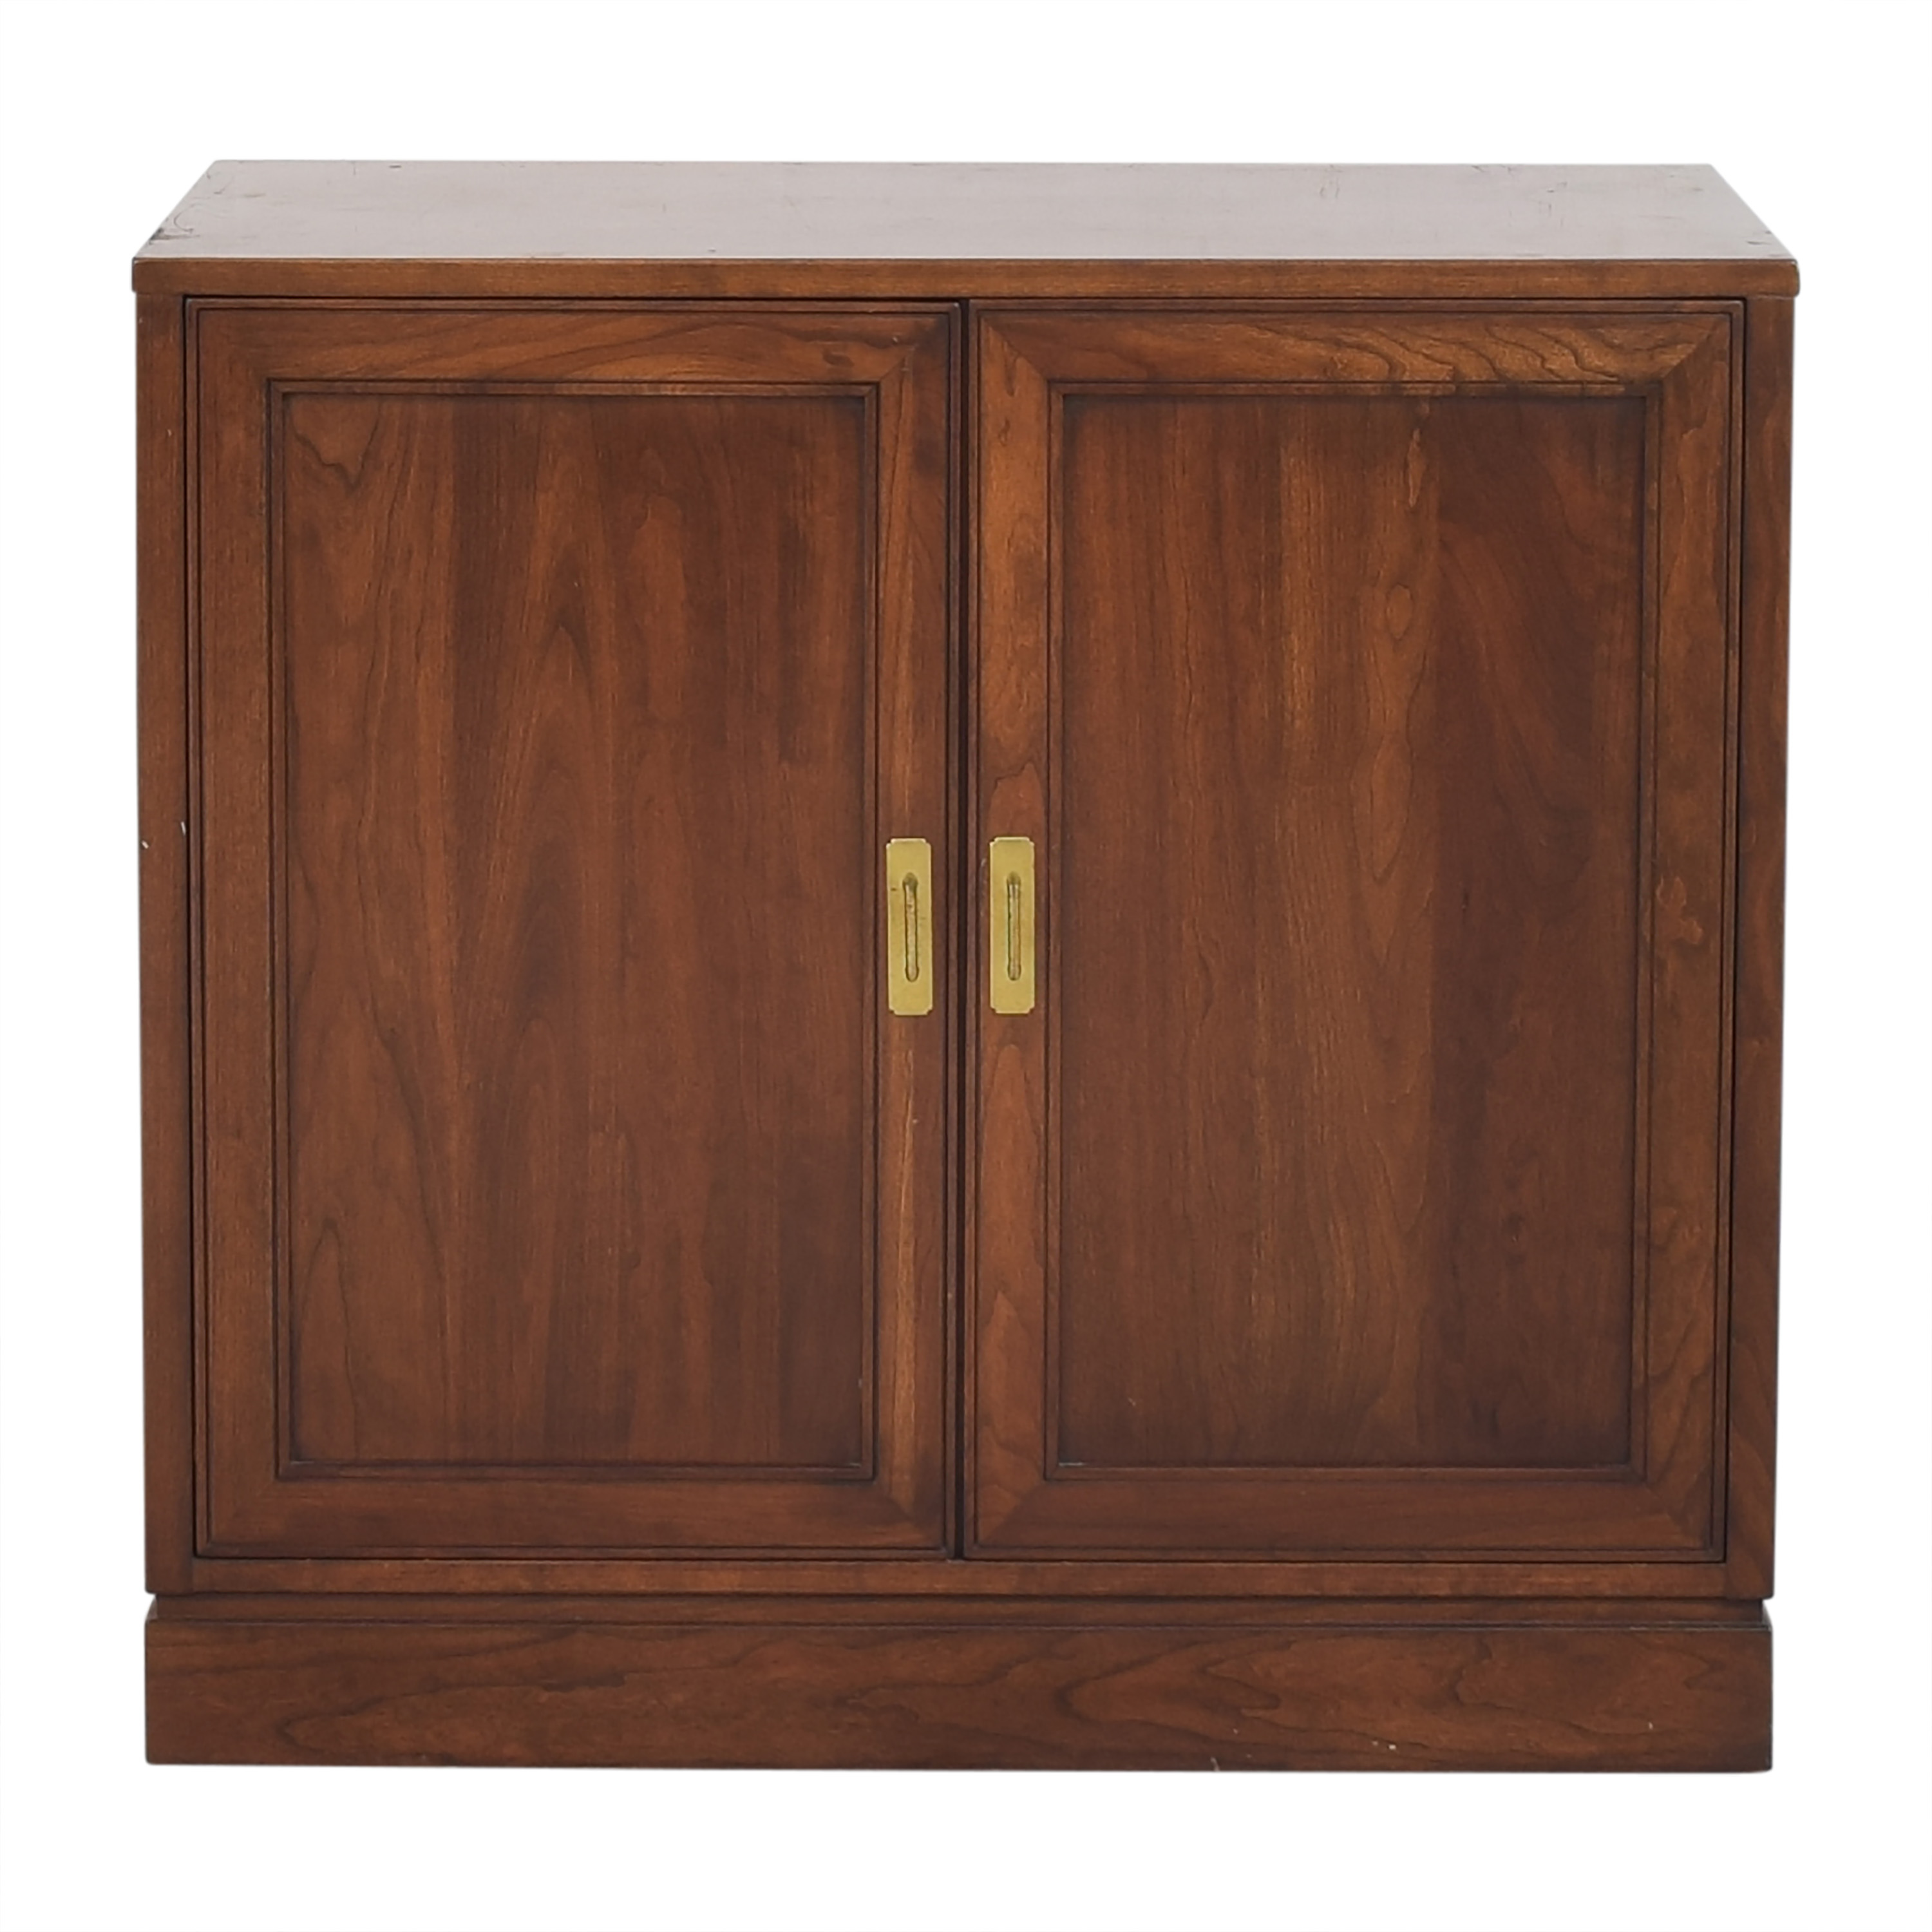 buy Ethan Allen Canova Campaign Two Door Cabinet Ethan Allen Cabinets & Sideboards